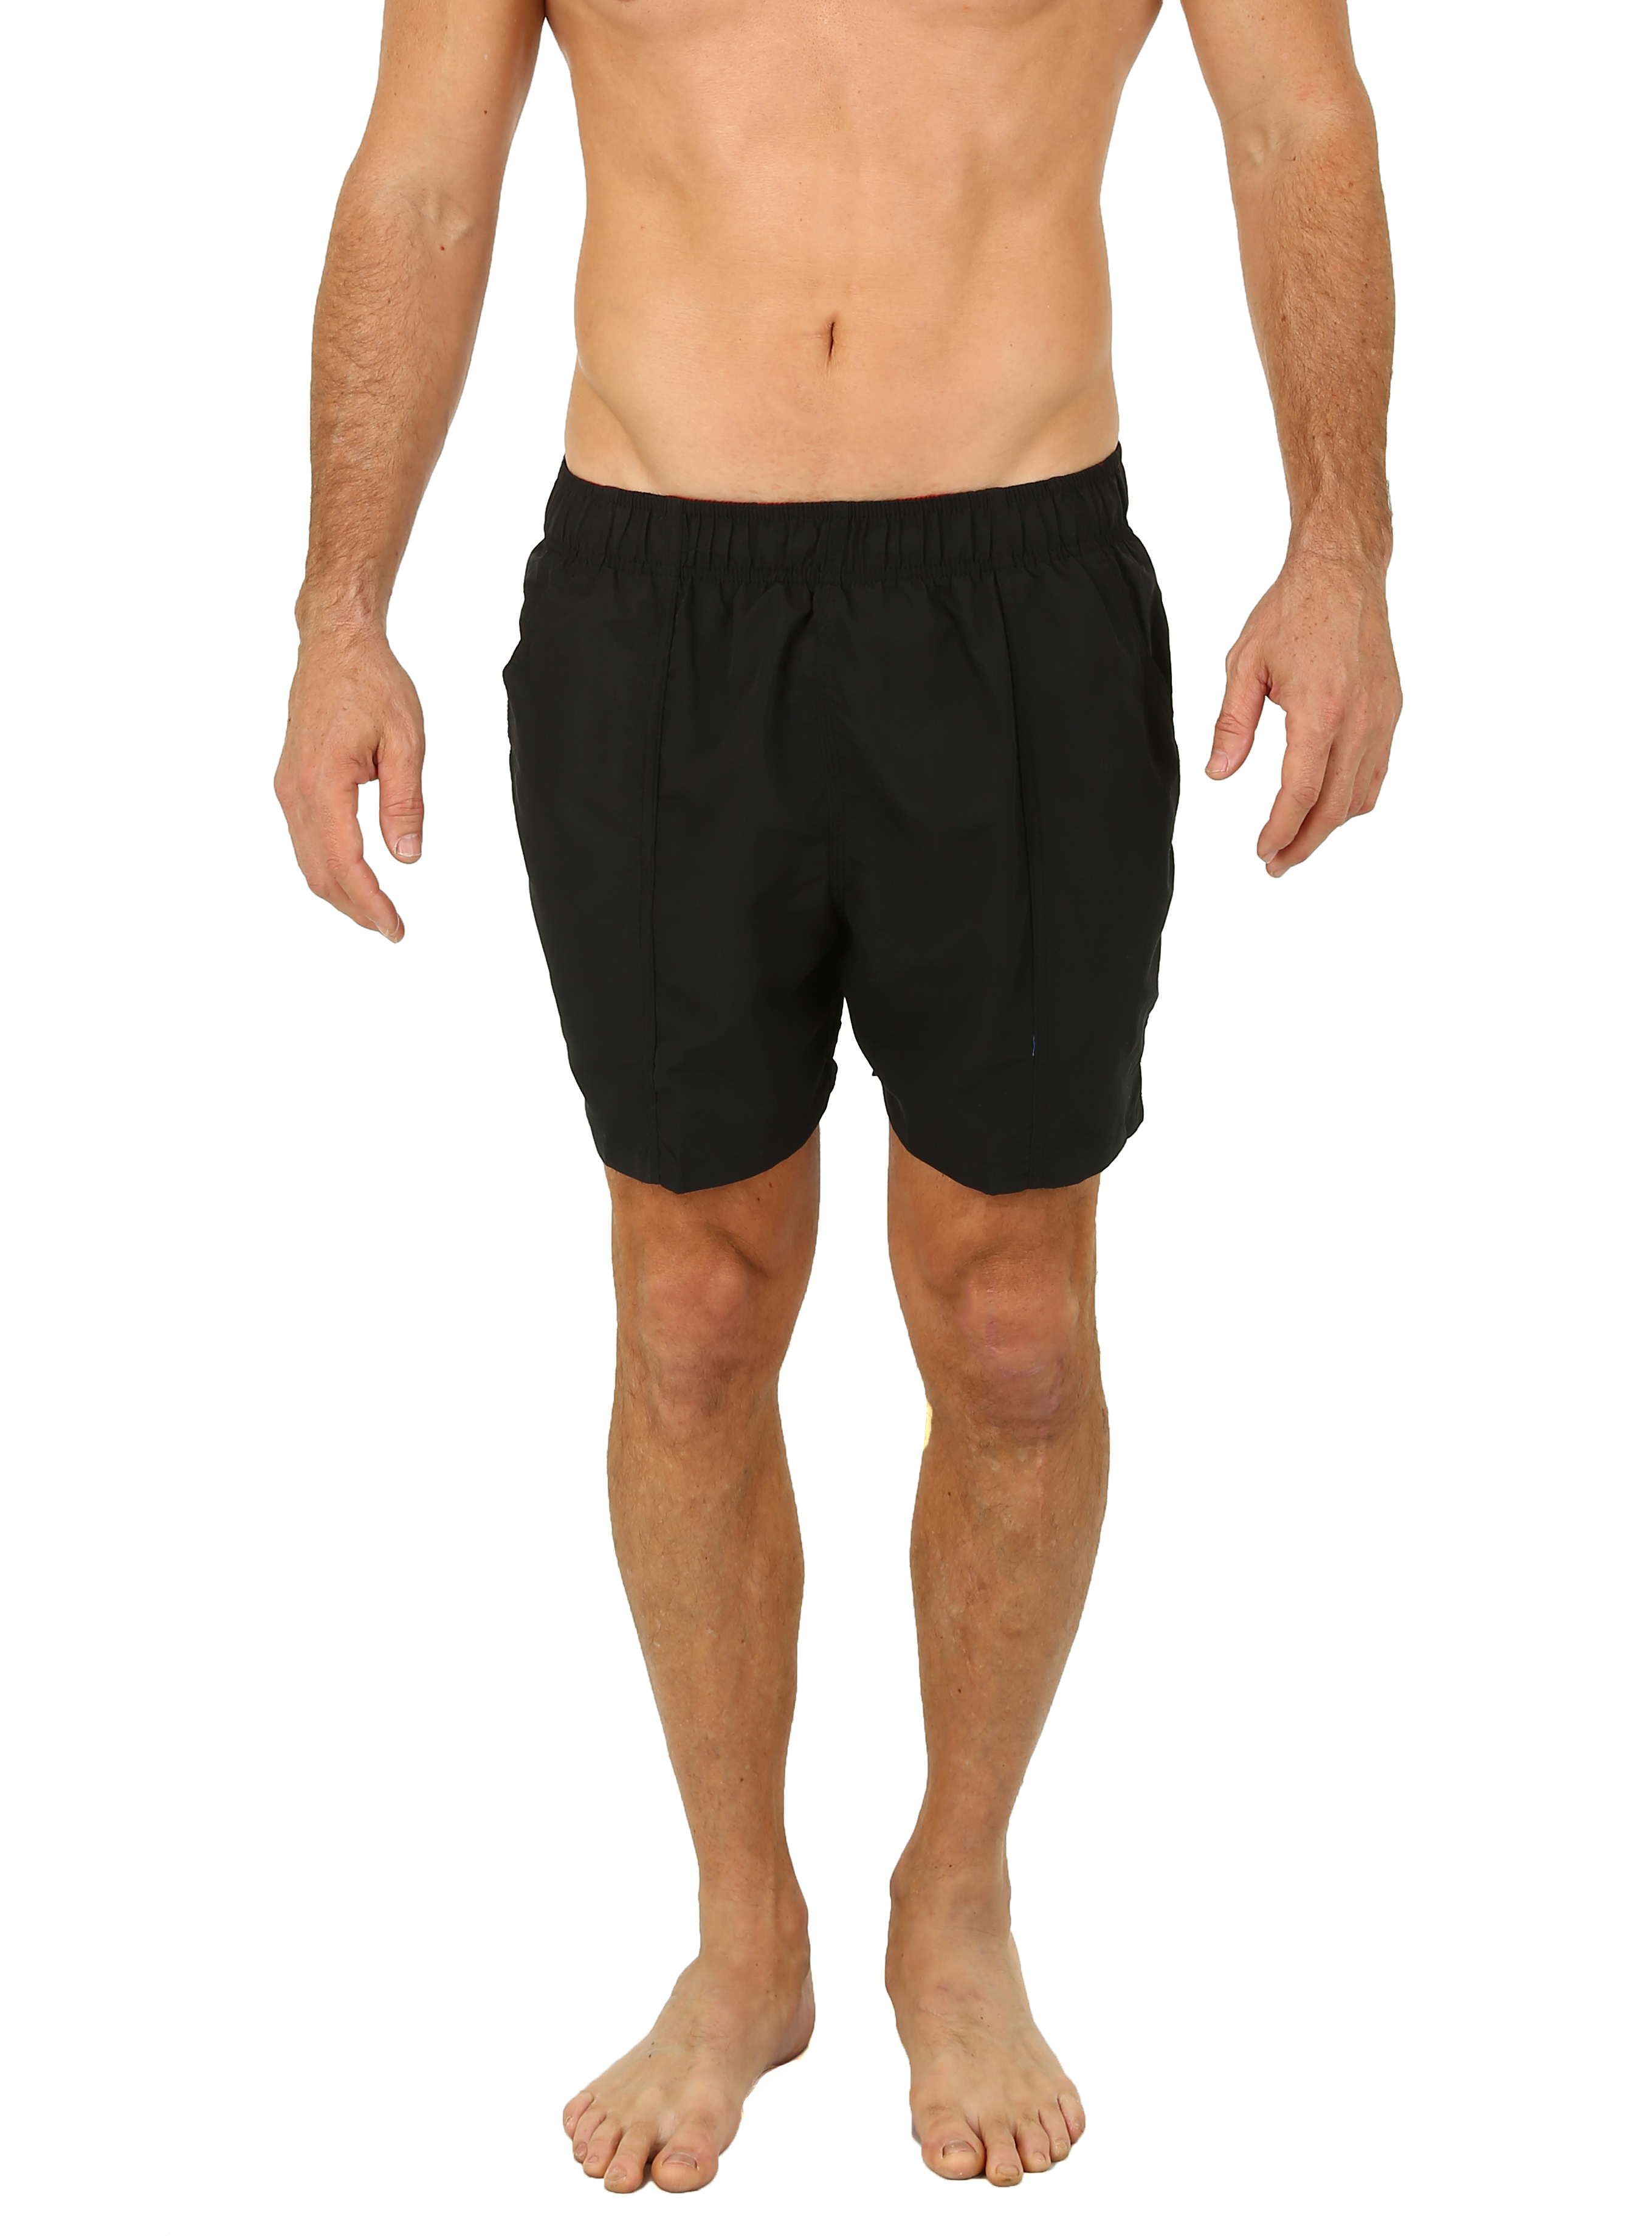 Image Result For Swimming Trunks With Waterproof Pocket